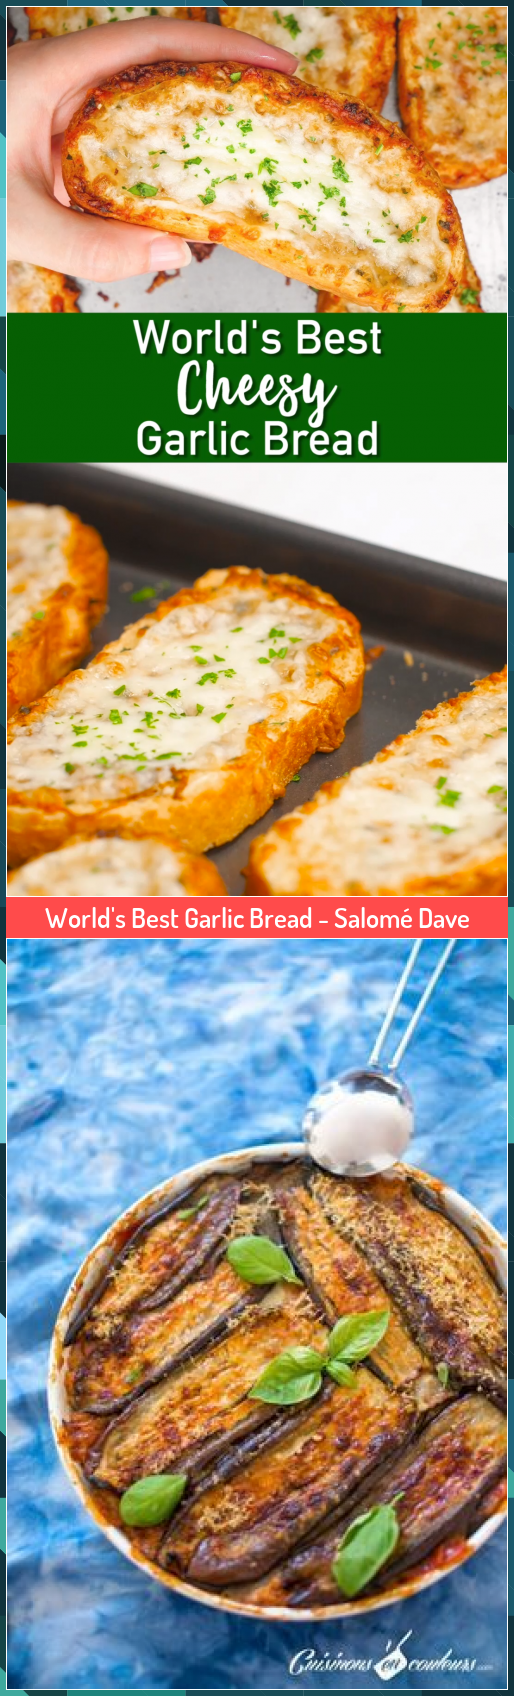 World's Best Garlic Bread - Salomé Dave #Bread #Dave #Garlic #Salomé #Worlds